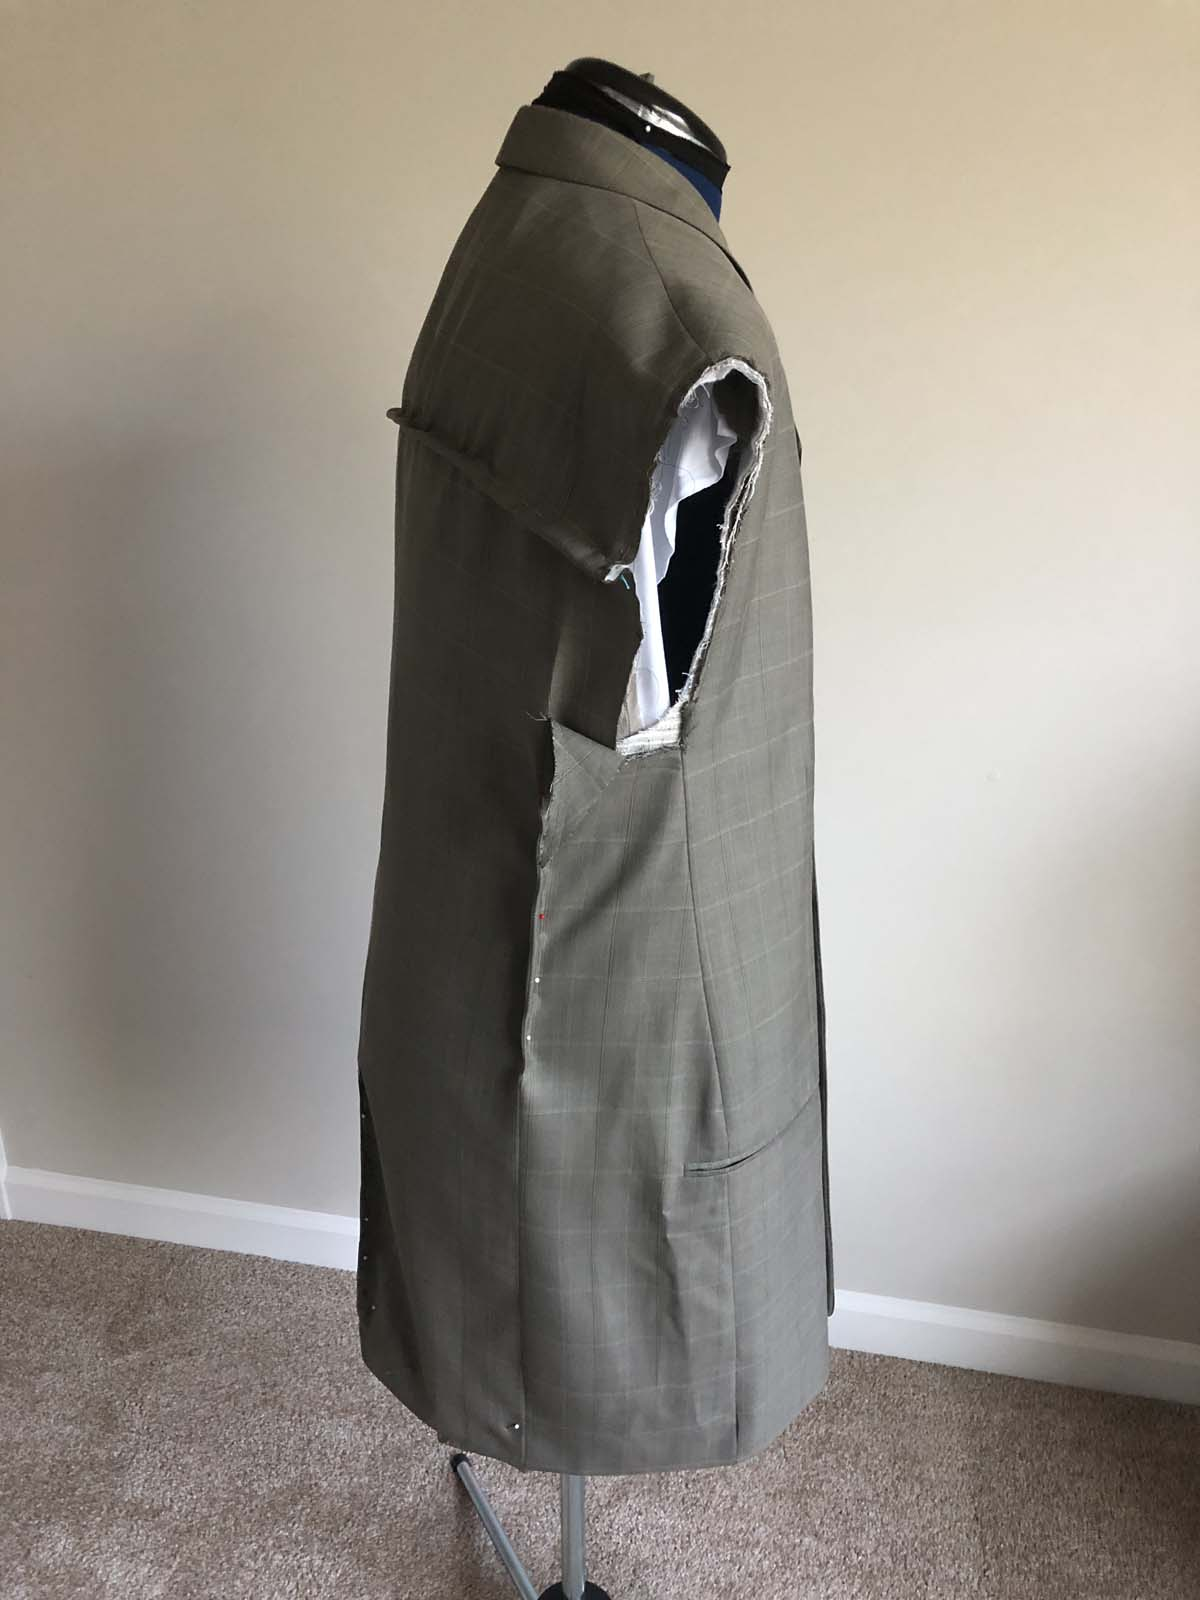 More fitting and draping on the men's suit jacket